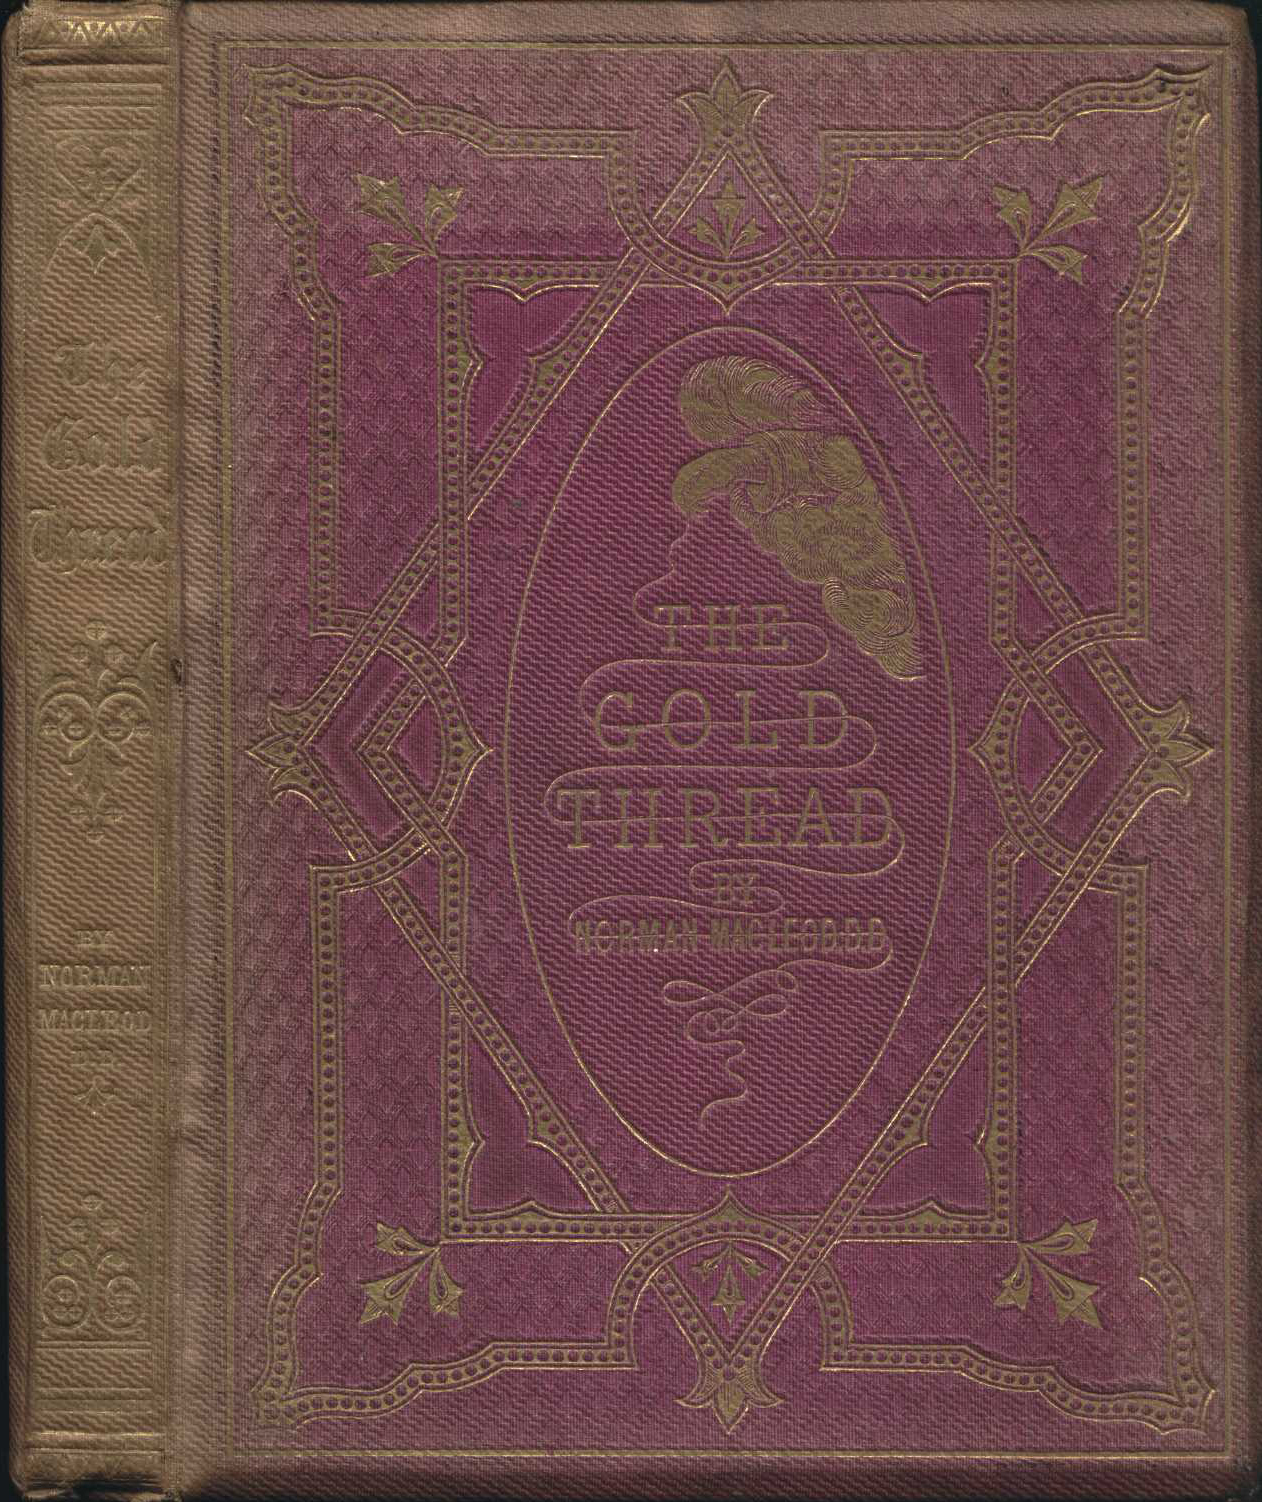 Norman Macleod. The gold thread: a story for the young. Edinburgh: A. Strahan & Co.; London: Hamilton, Adams, 1861.